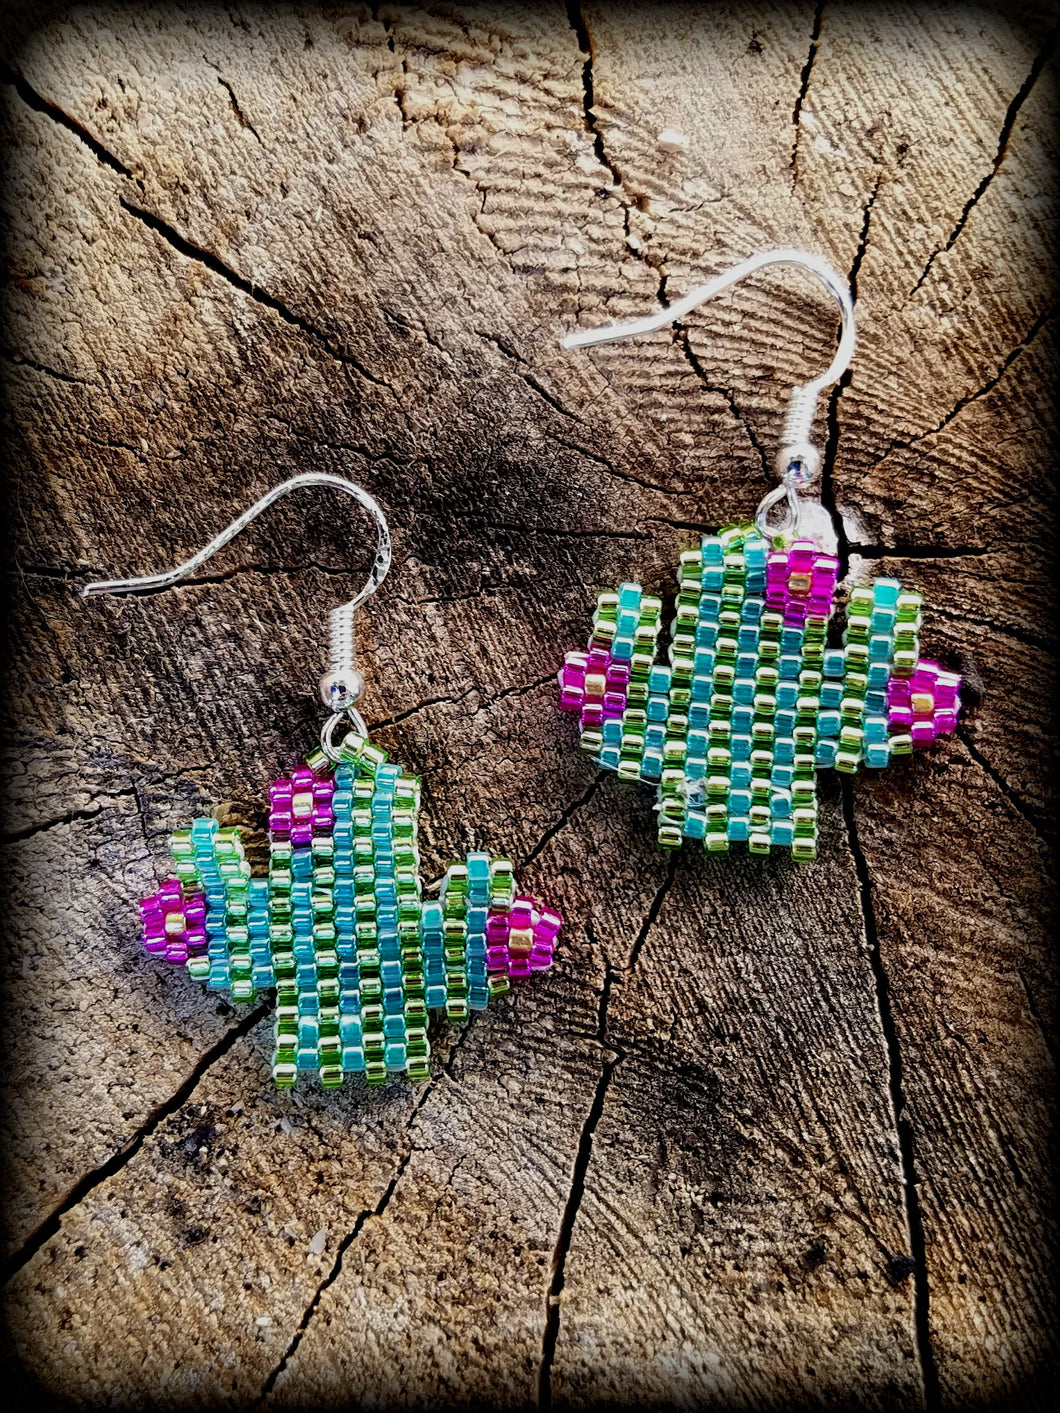 Handmade Beaded Cactus Earrings on Sterling Silver Ear Wire - Succulent Treasure